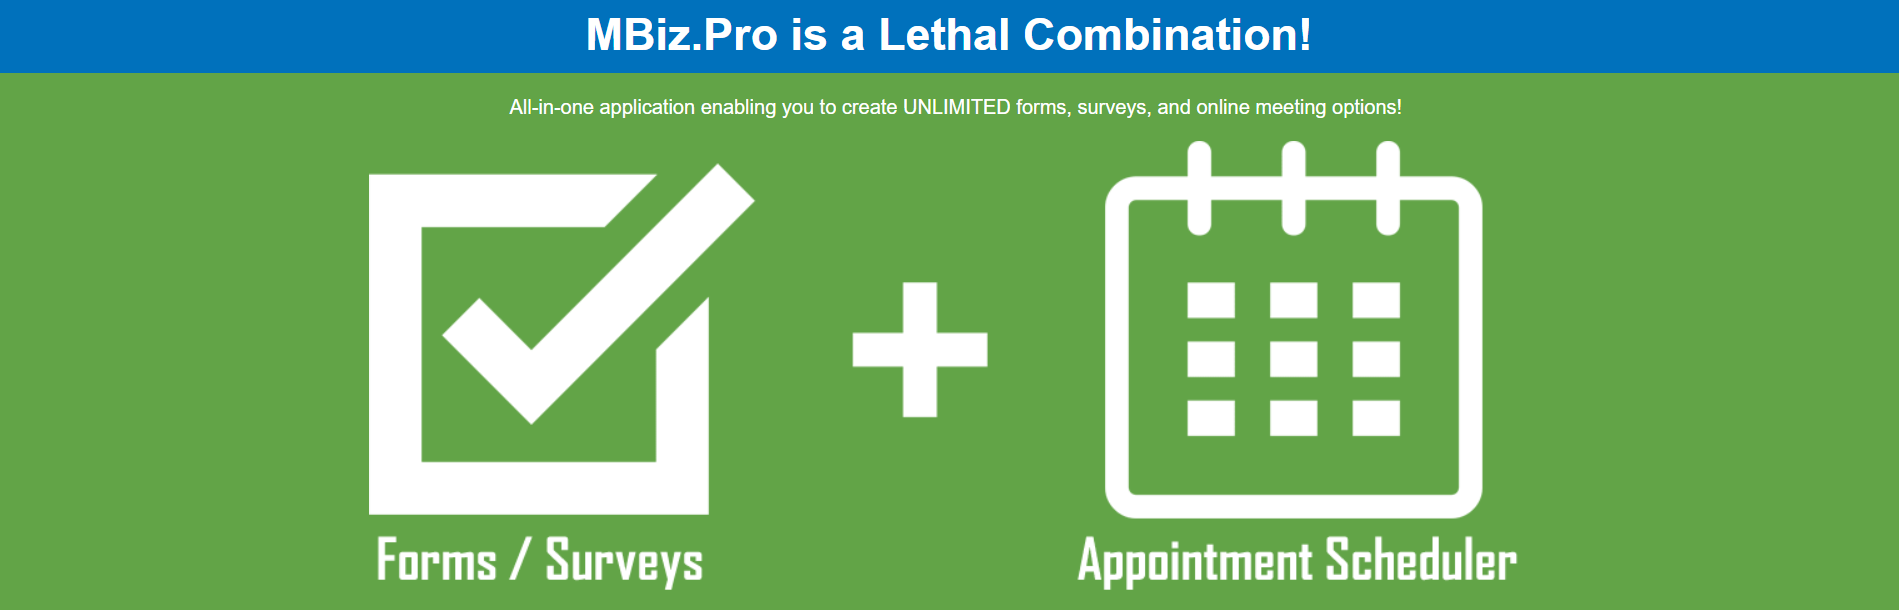 MBiz.Pro is a Legal Combination